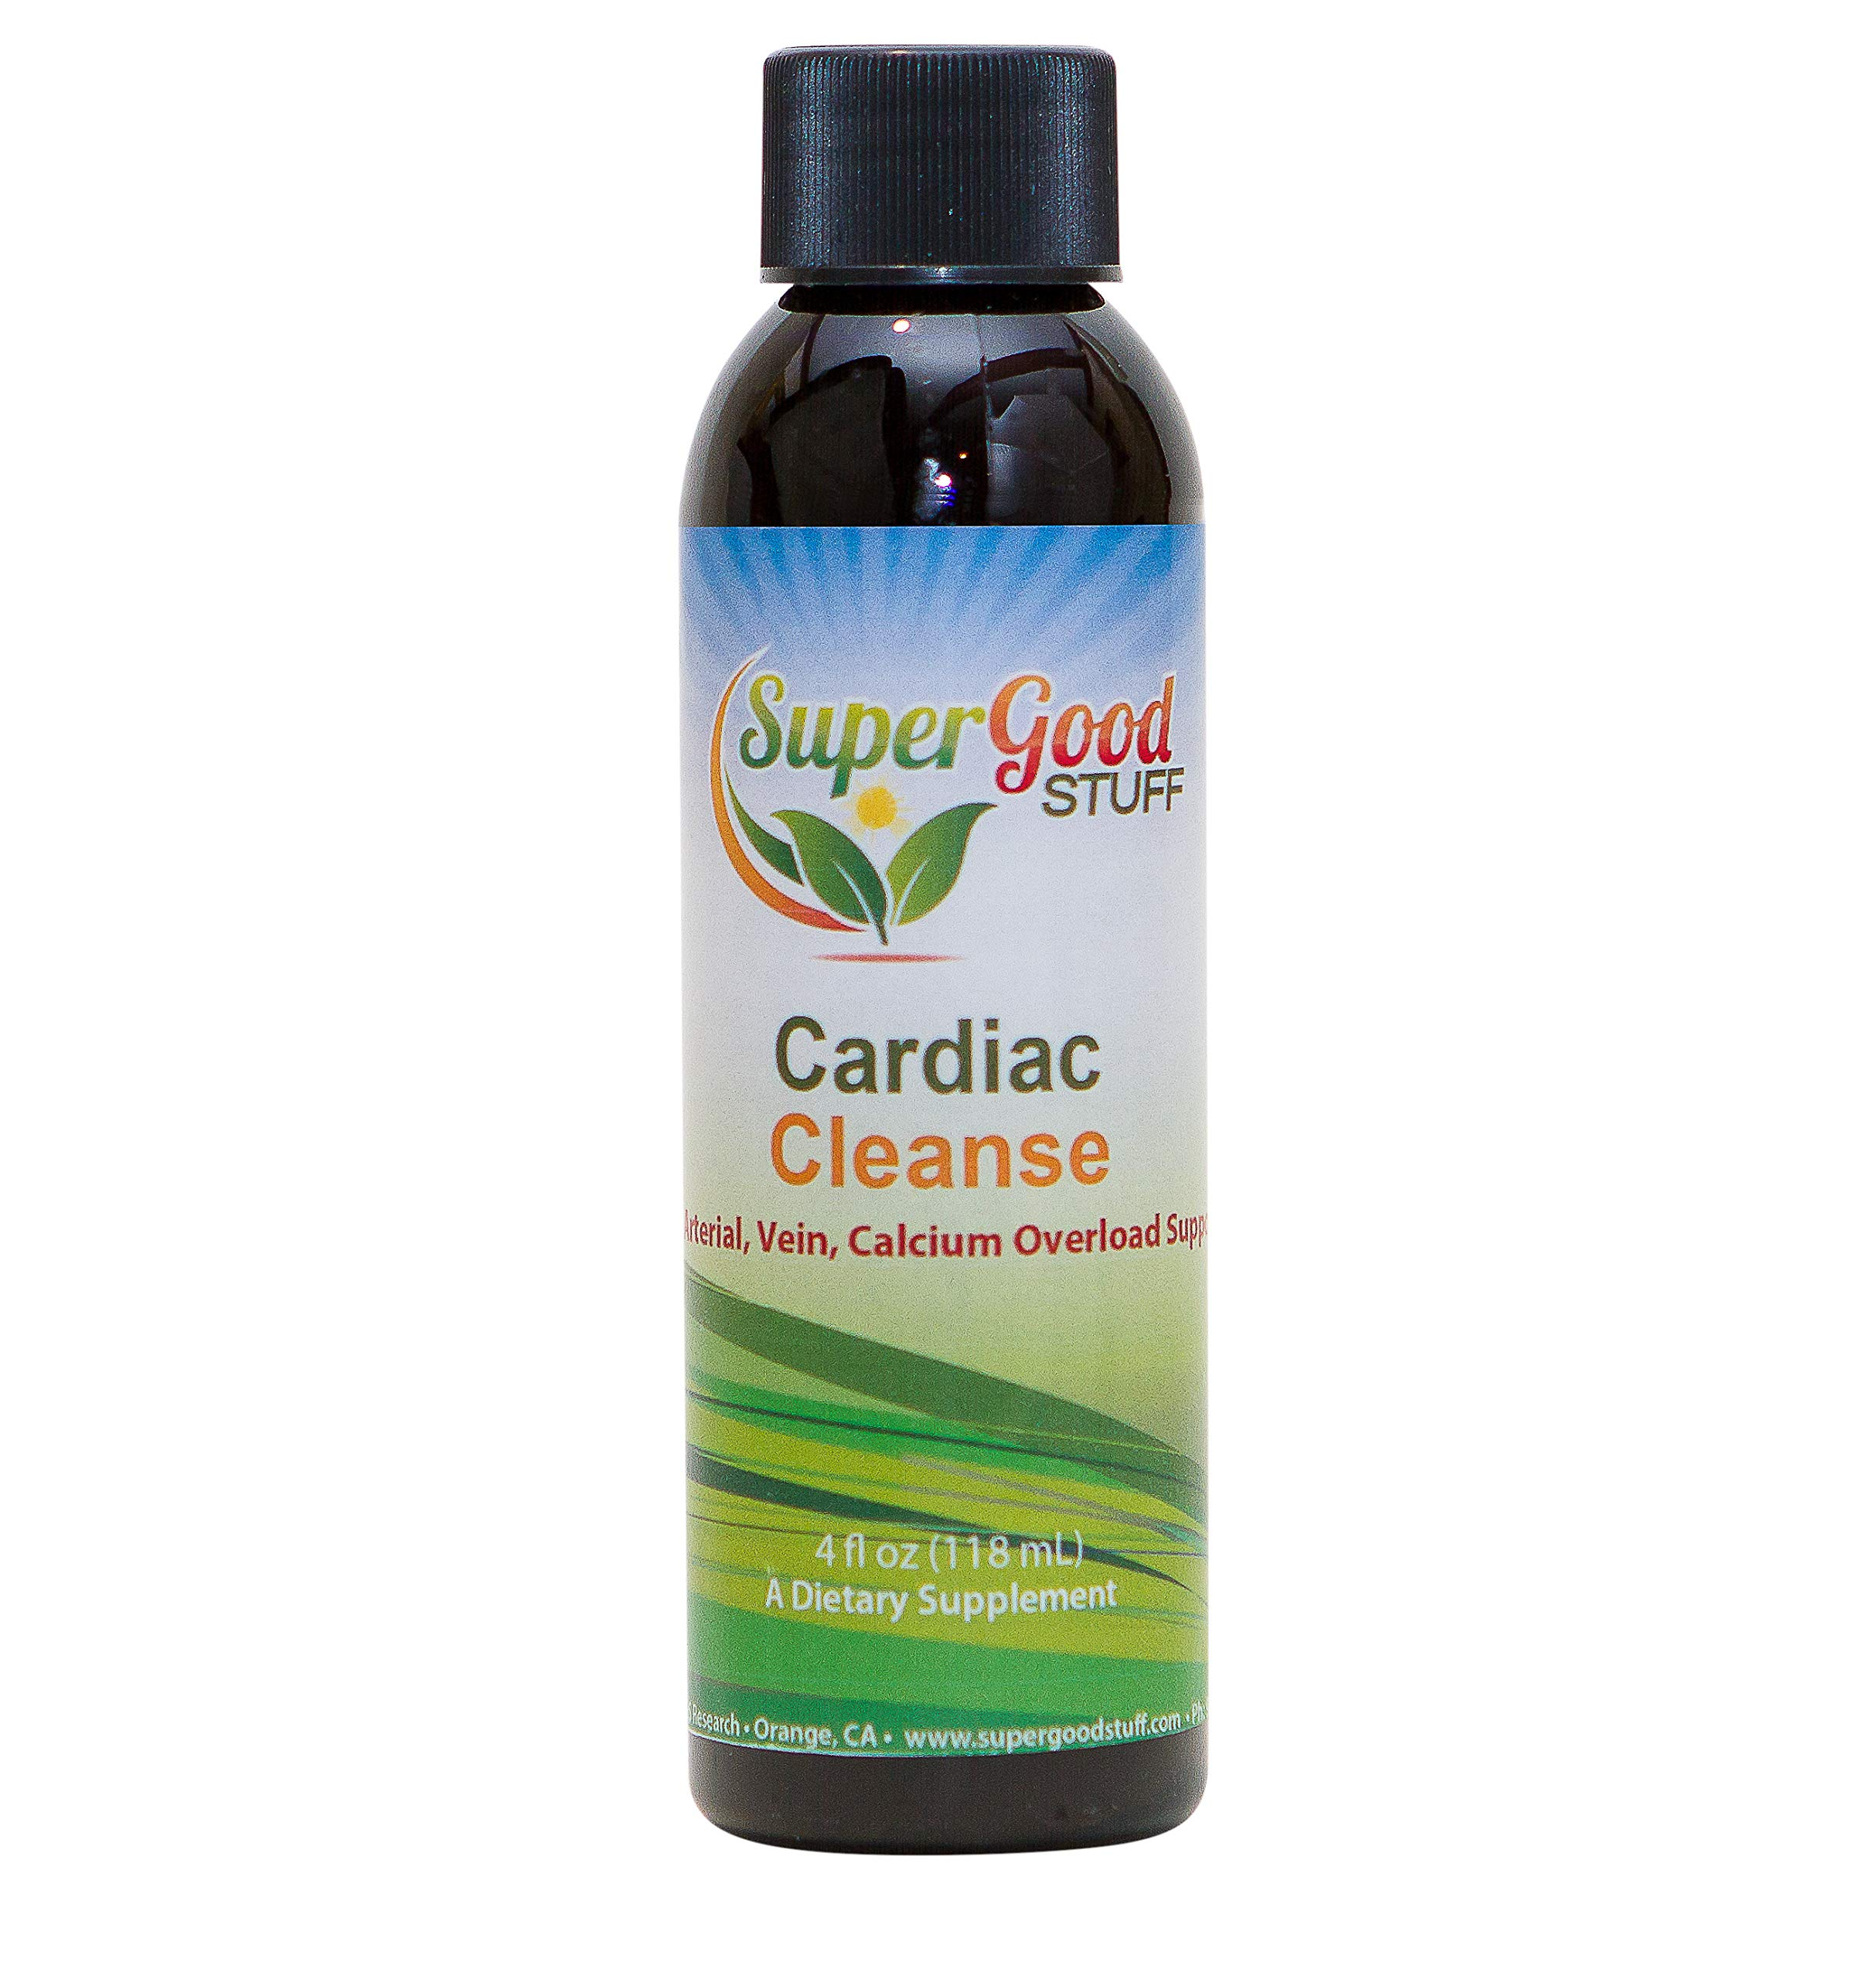 Cardiac Cleanse - Artery Cleanse - Reduces Plague and Calcium Build Up